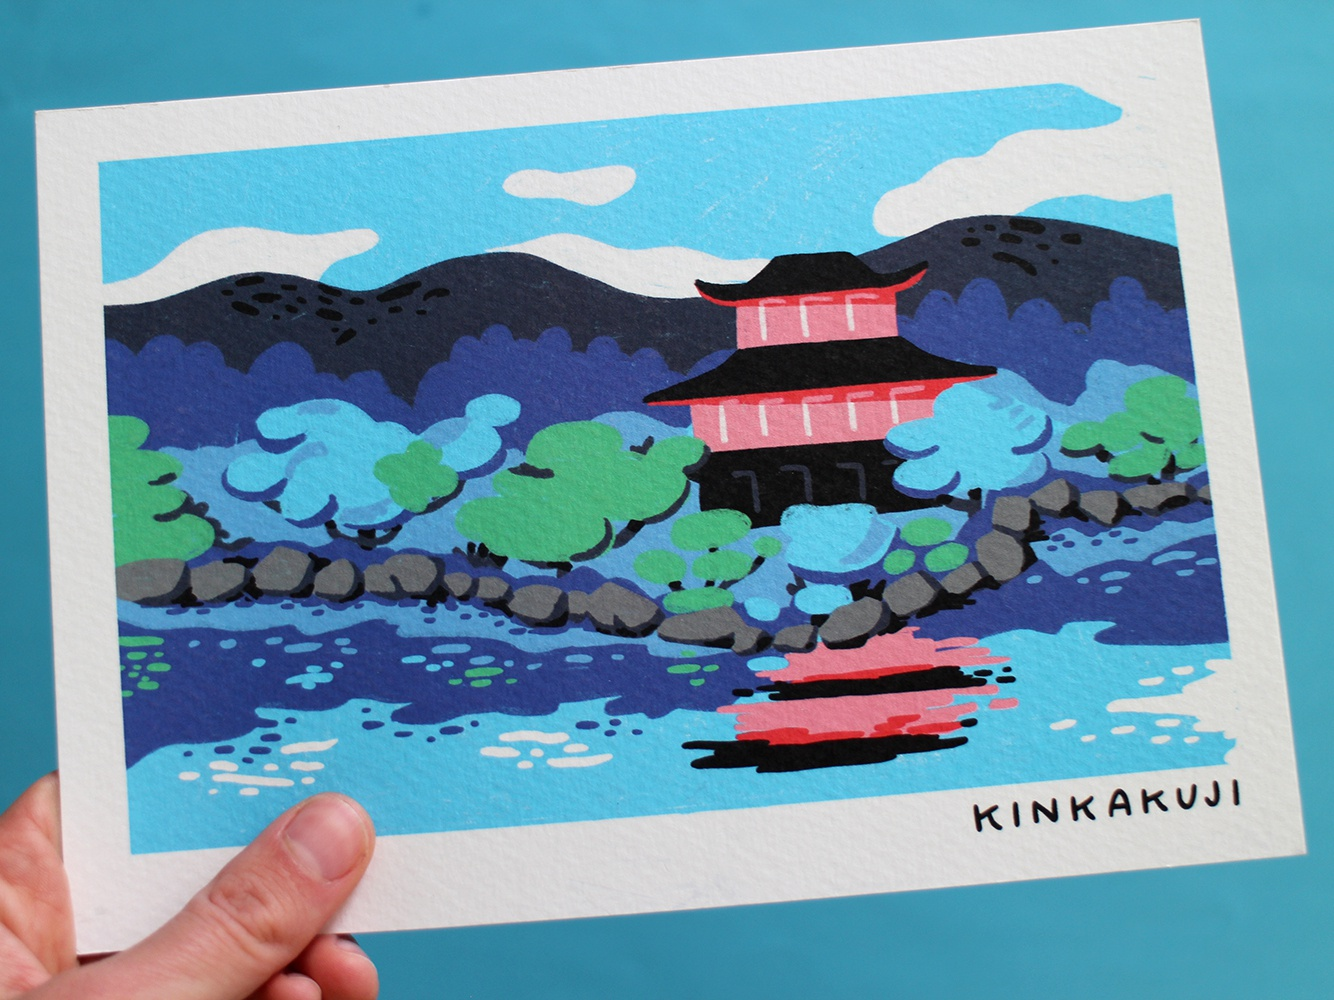 Prints Kyoto print procreate drawing japan art japan travel illustration kinkakuji illustration kyoto